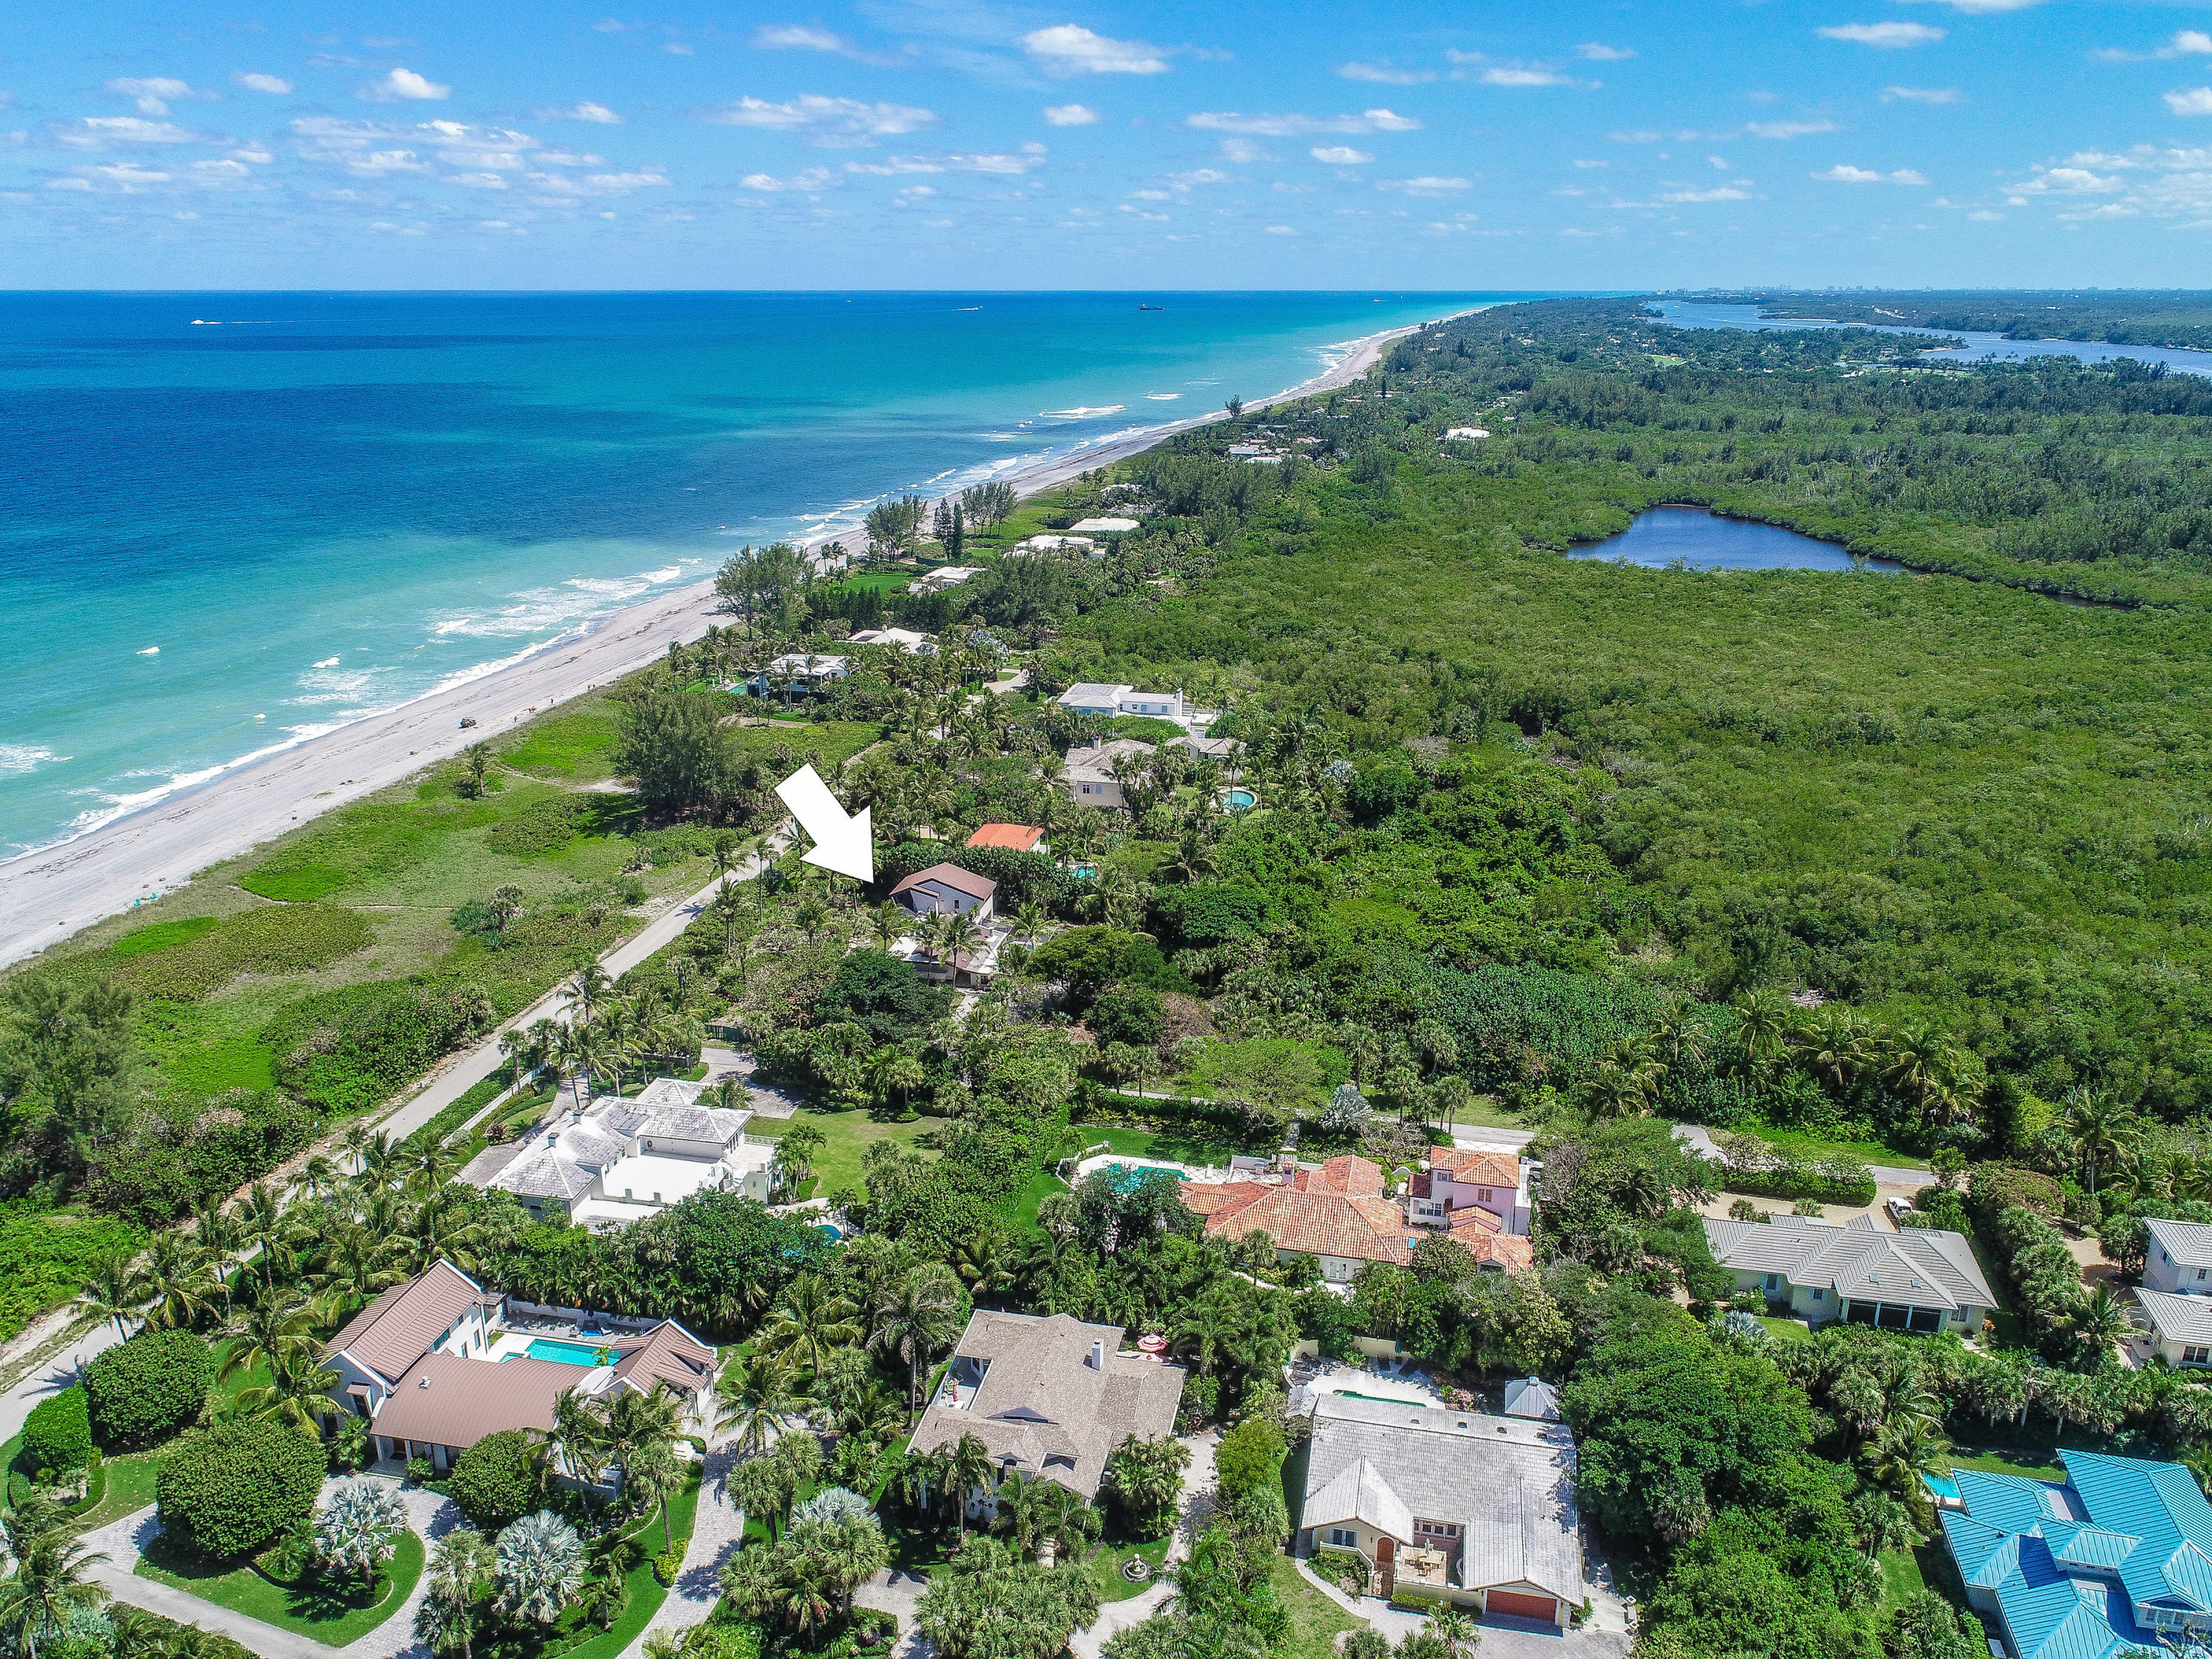 BON AIR BEACH HOBE SOUND REAL ESTATE